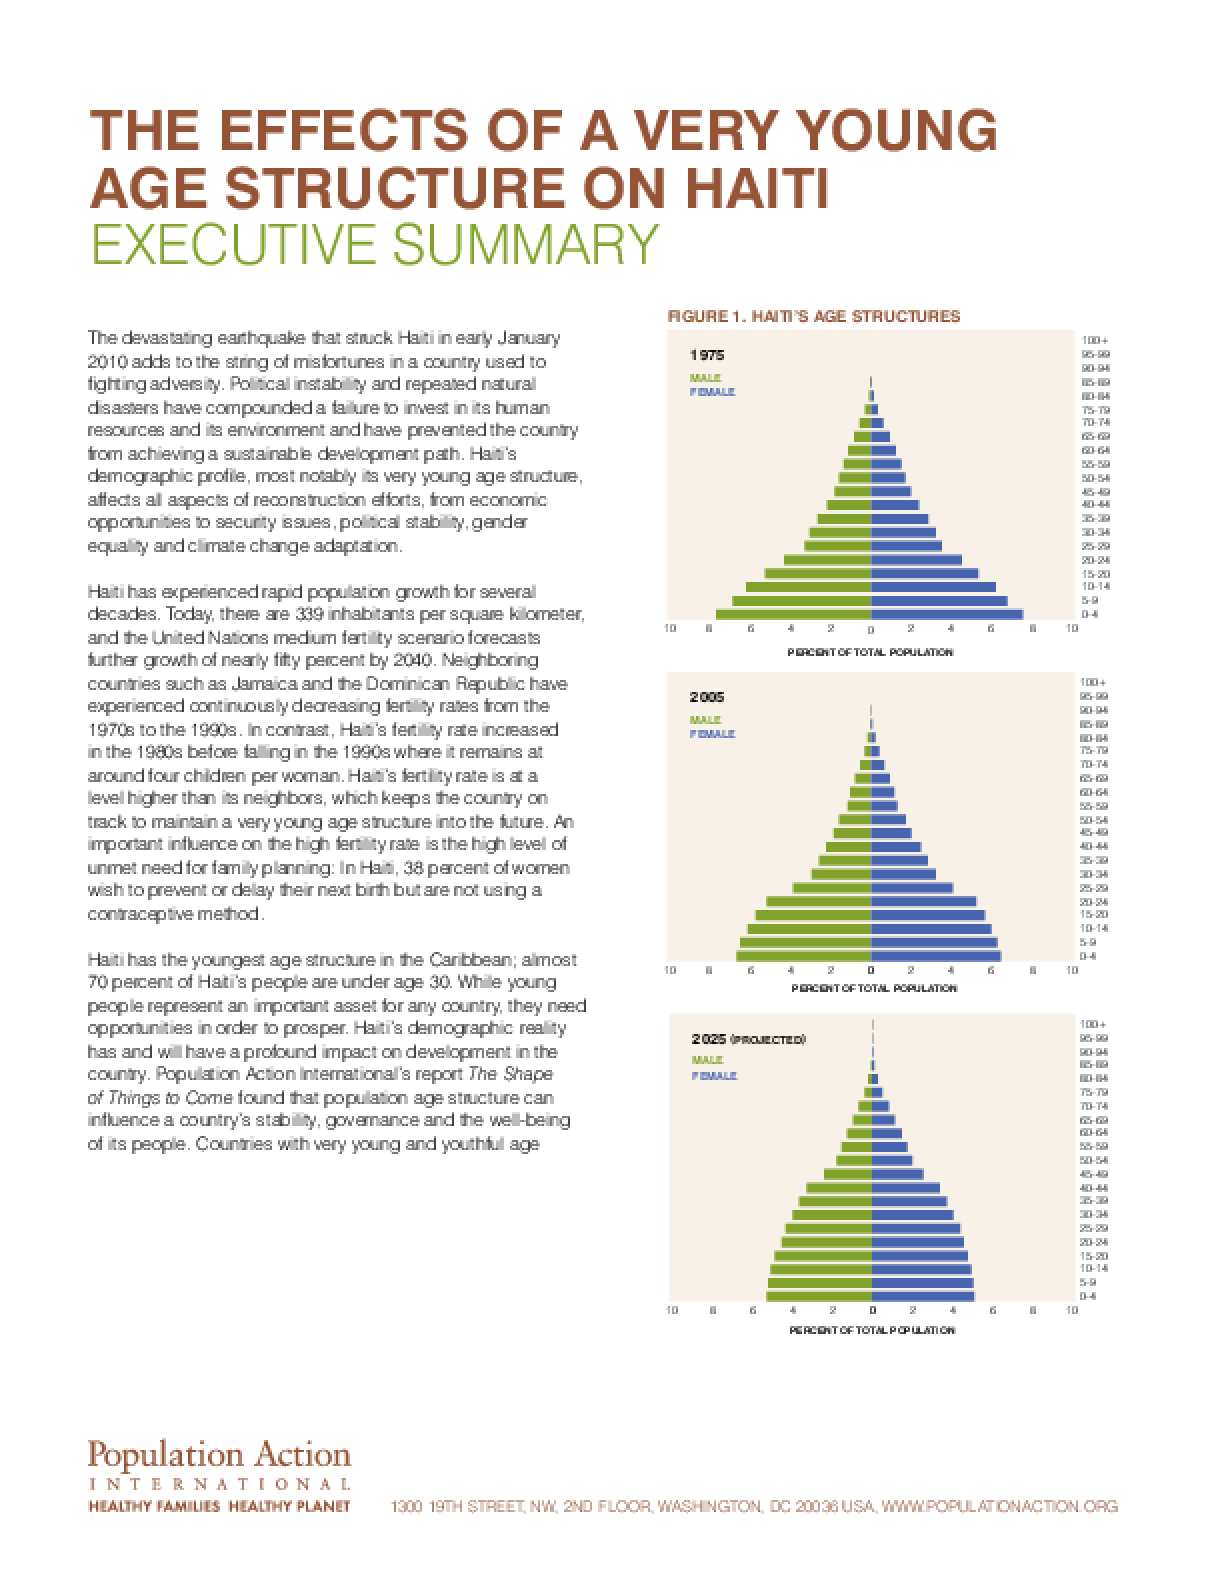 The Effects of a Very Young Age Structure in Haiti: A Country Case Study